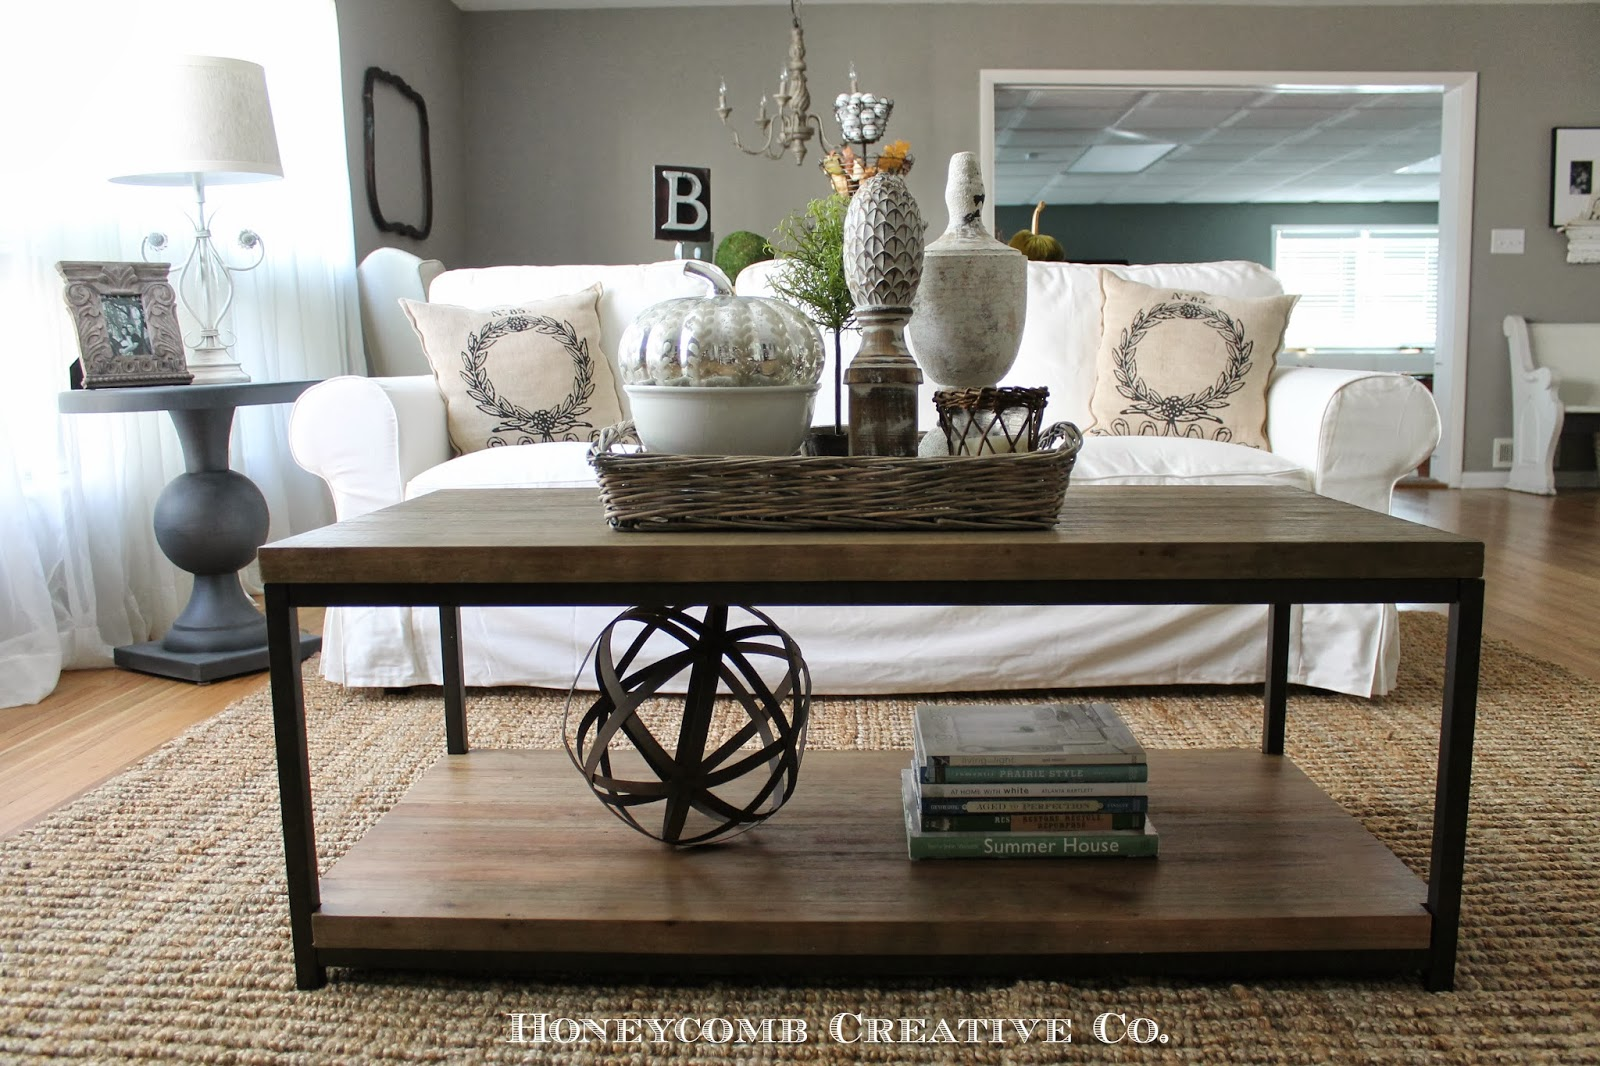 Coffee table styling modern rustic style pinterest for Living room ideas without coffee table